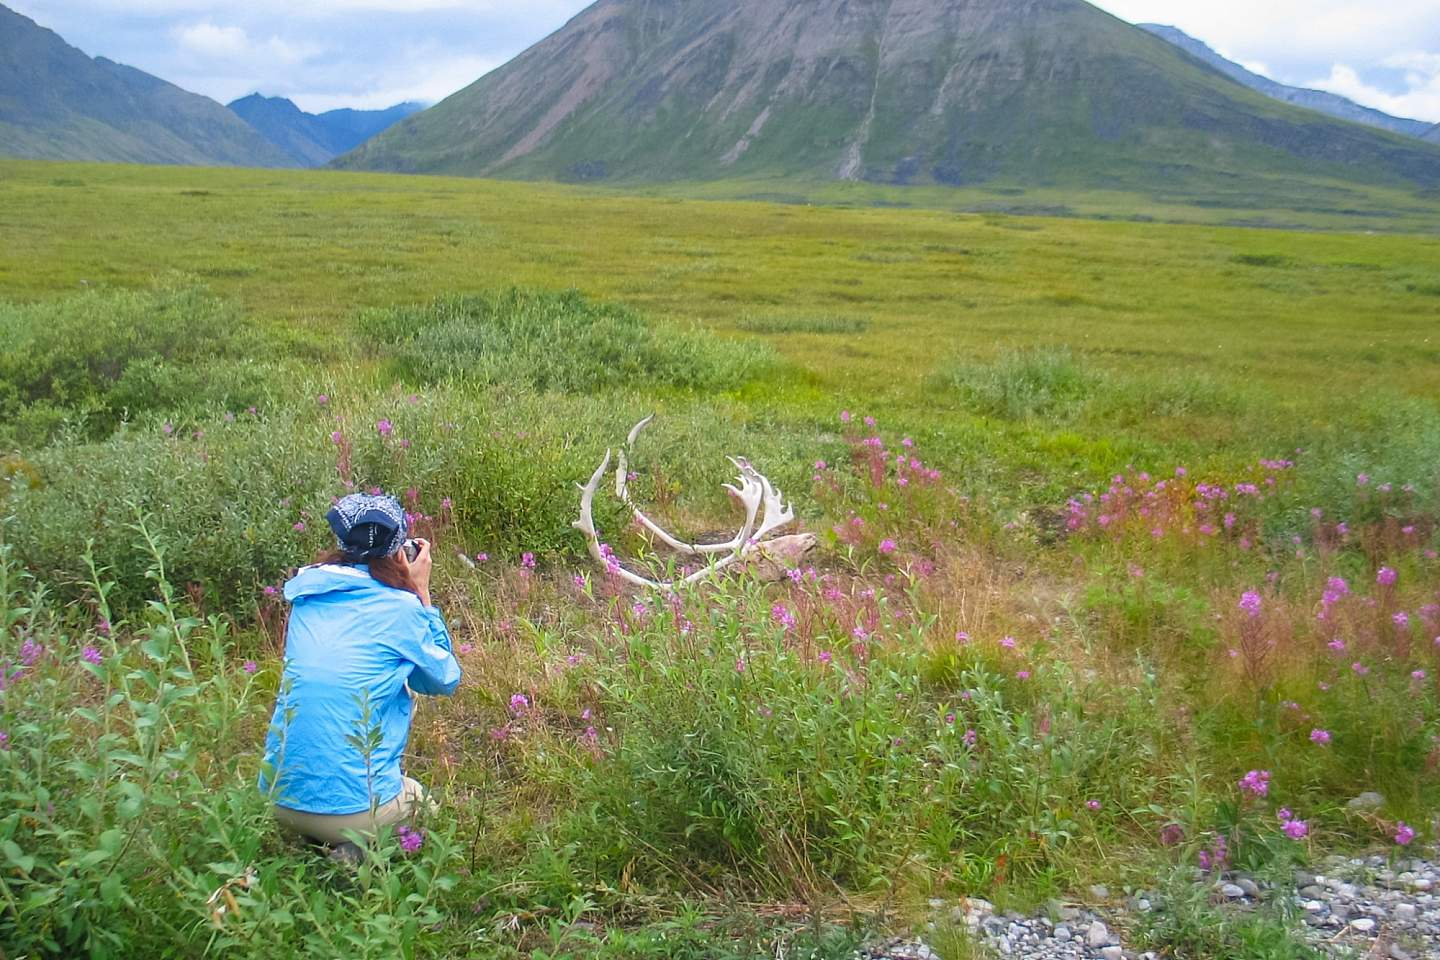 Someone kneels in the Alaskan tundra to photograph fallen antlers